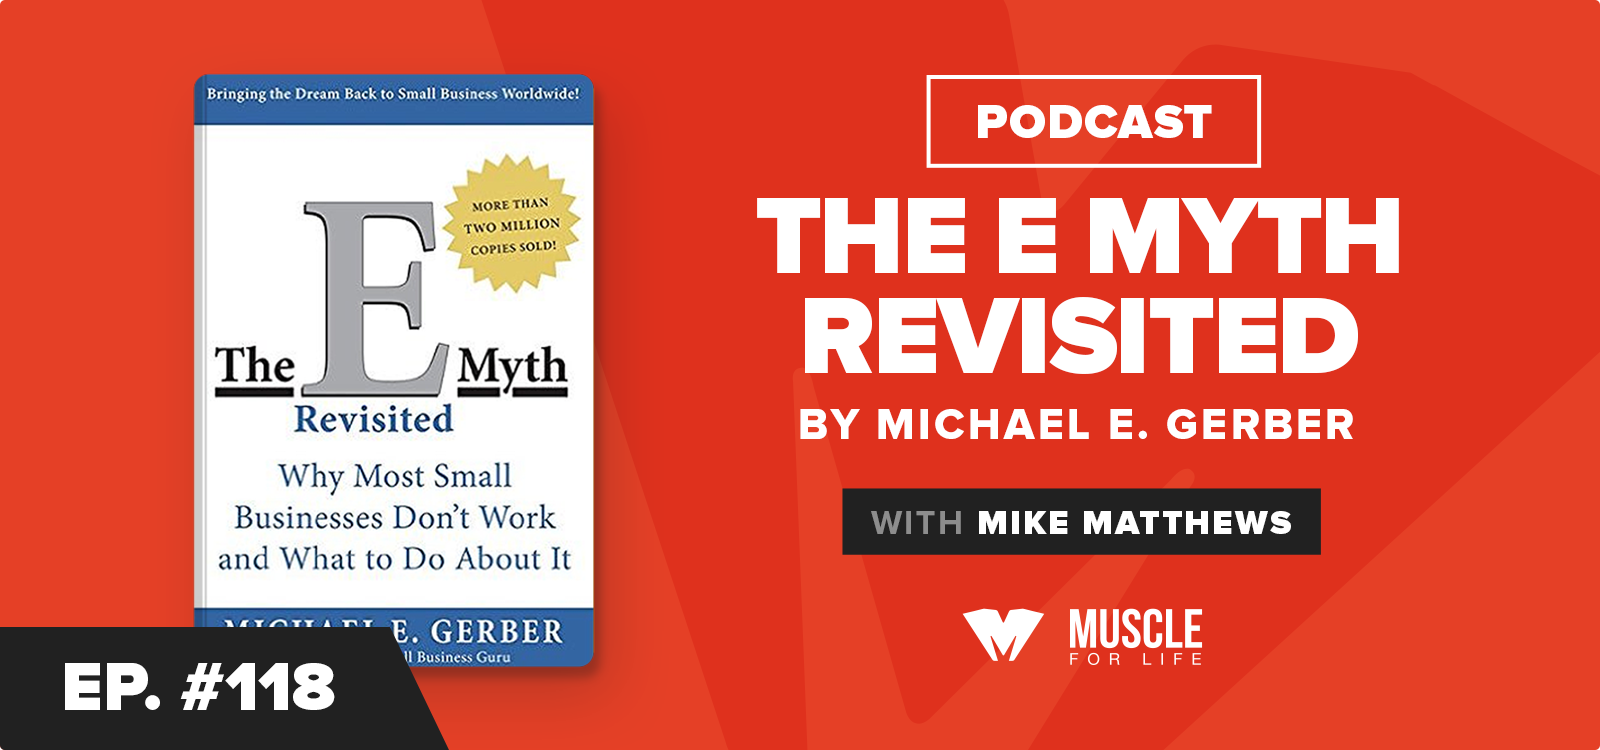 MFL Book Club Podcast: E-Myth by Michael Gerber